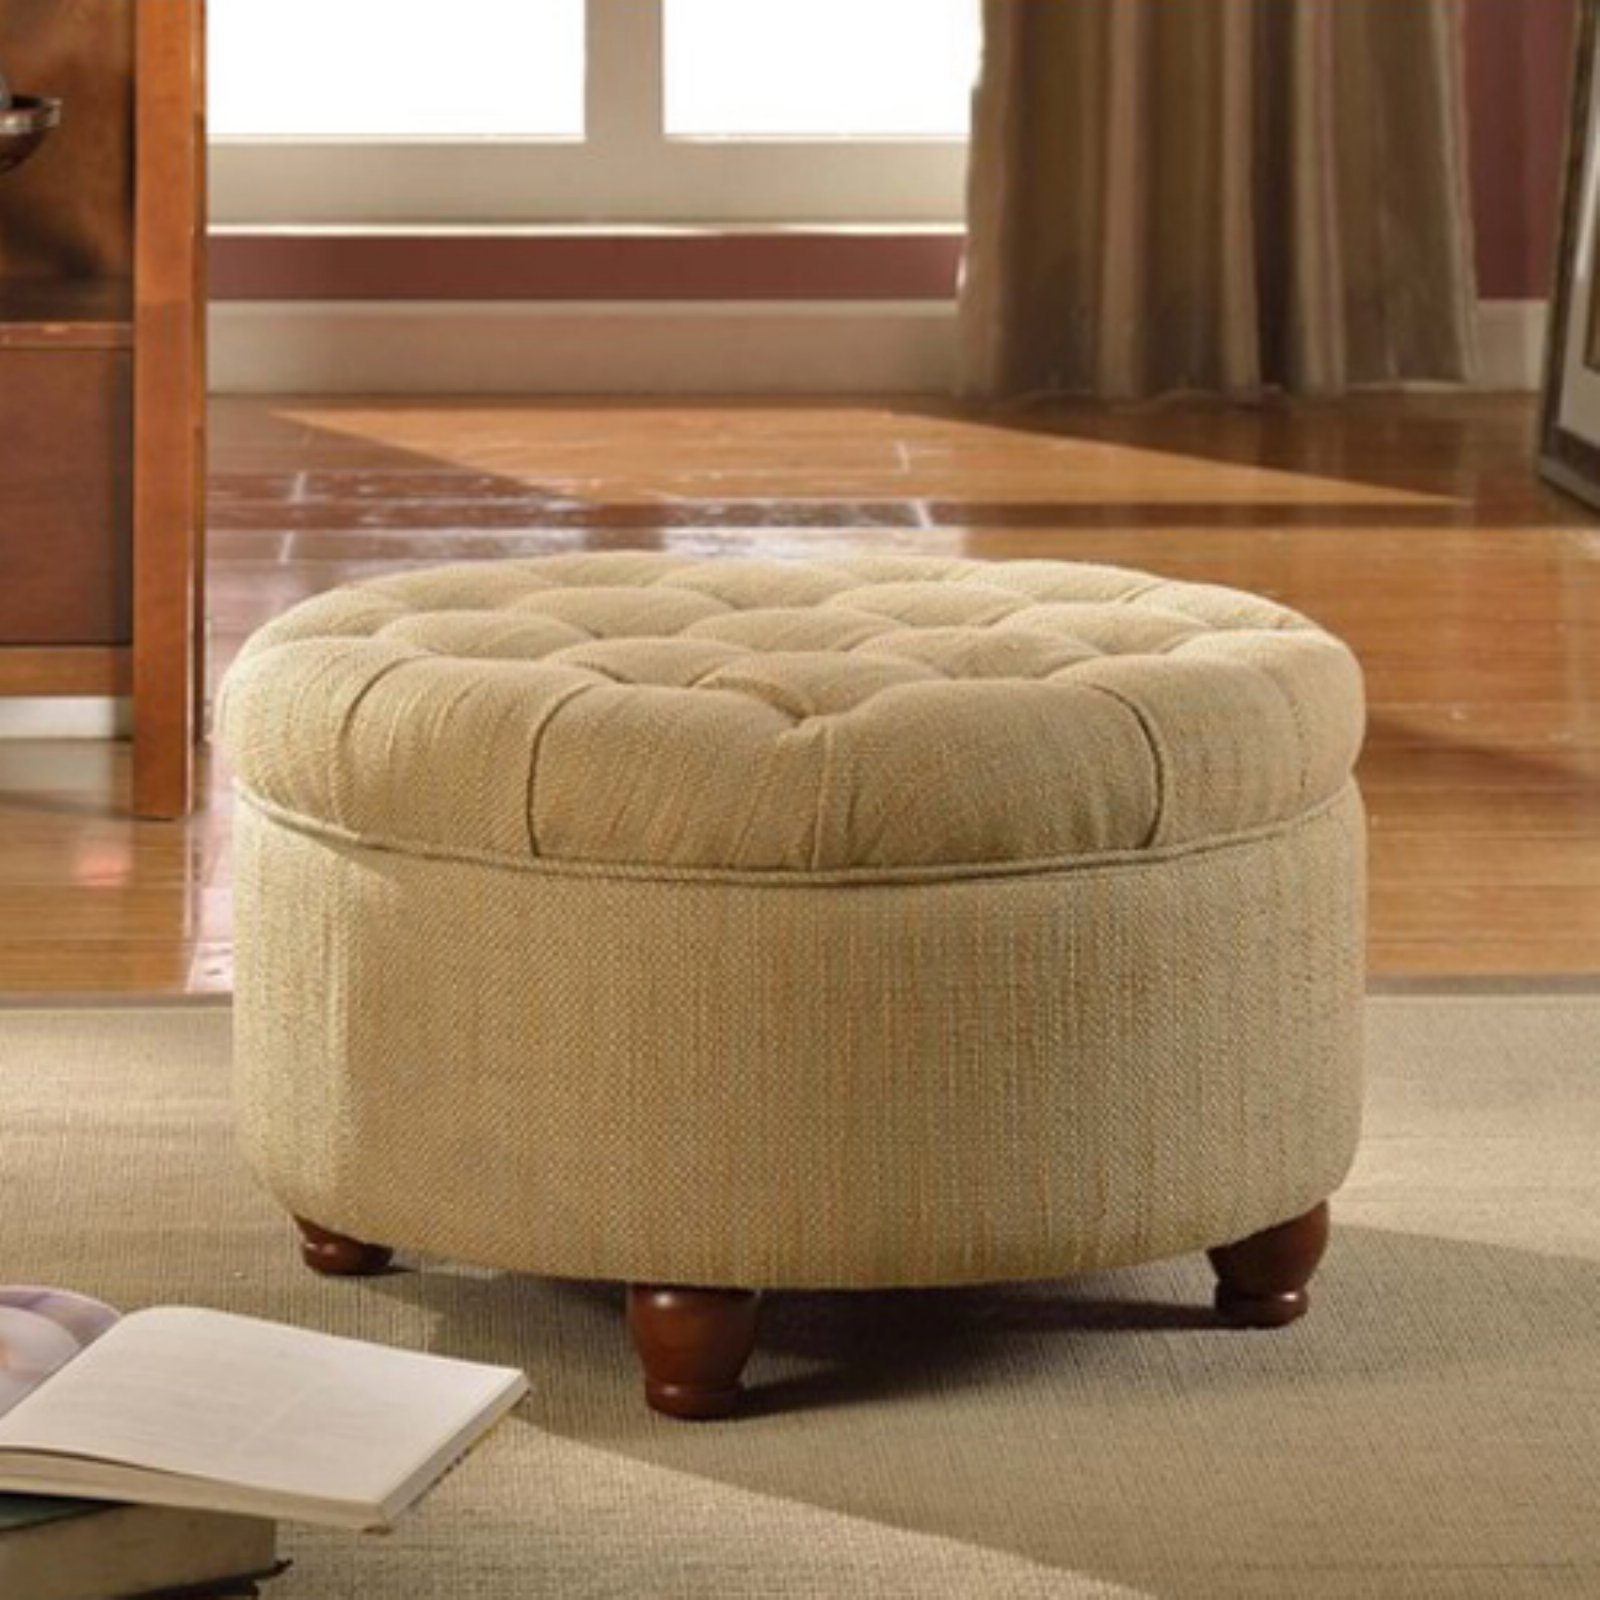 HomePop Tweed Tufted Storage Ottoman, Multiple Colors by Kinfine USA Inc